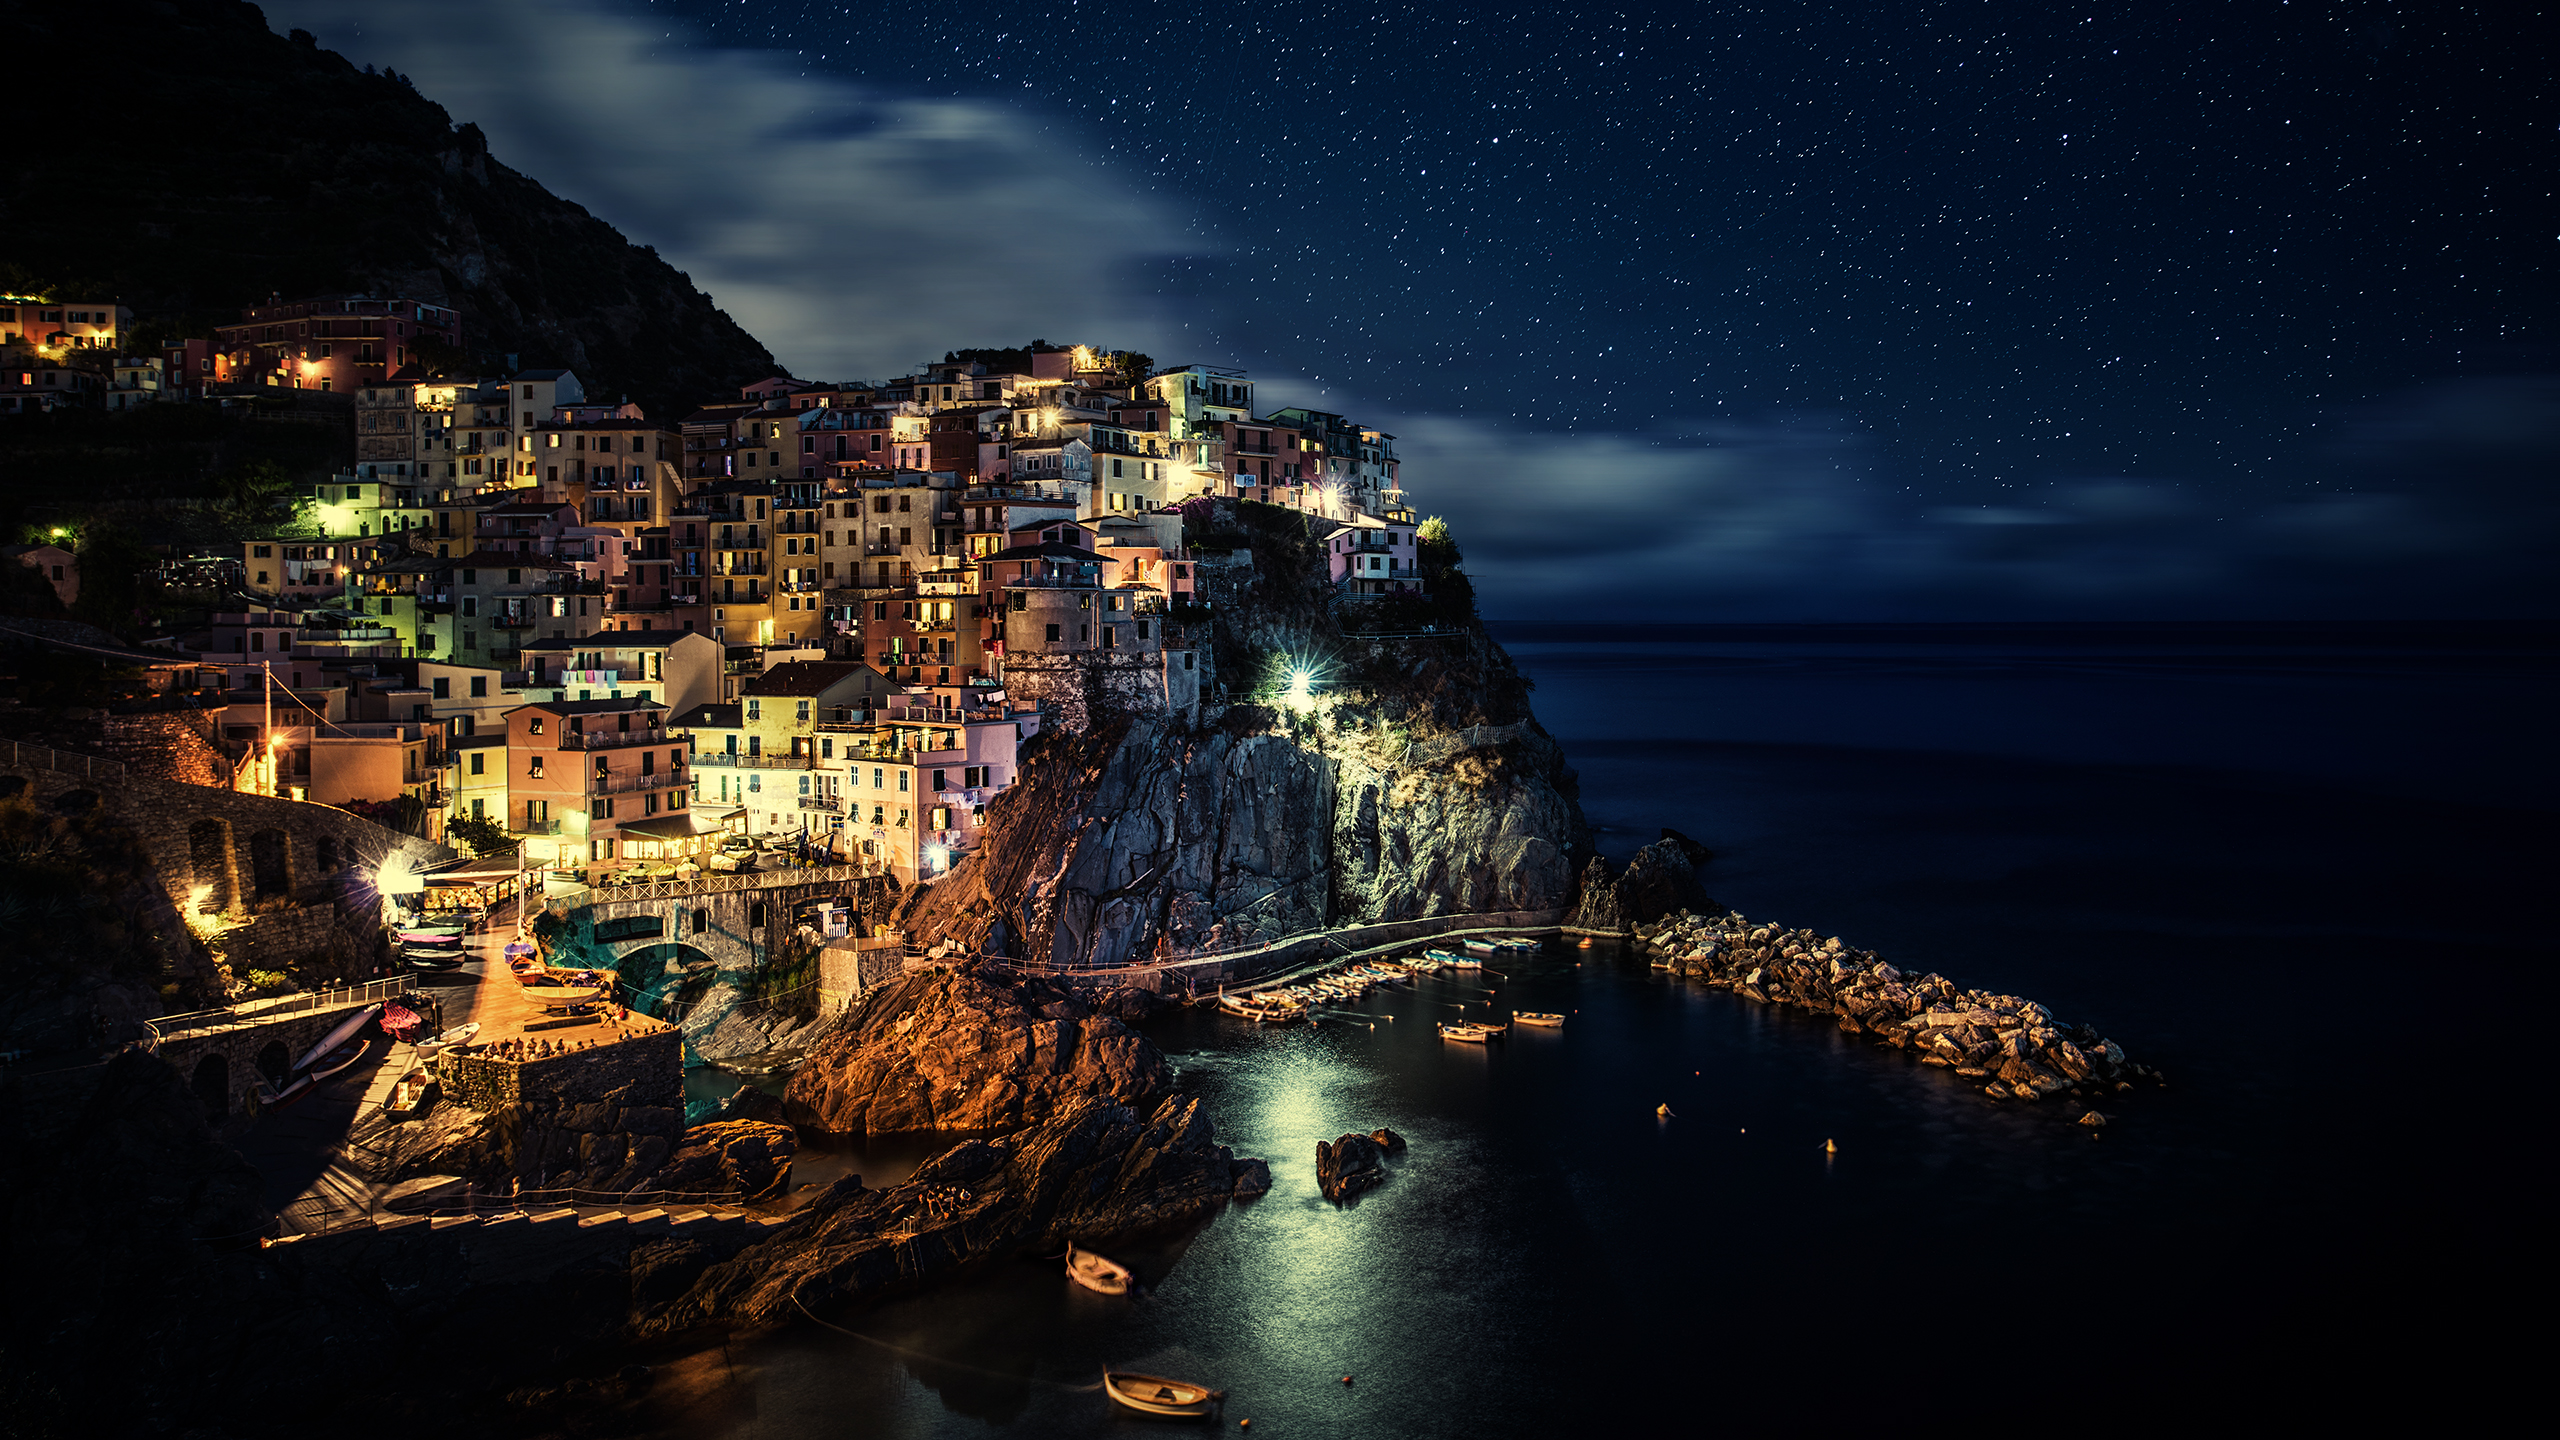 awesome_city_night_wallpaper_2560x1440